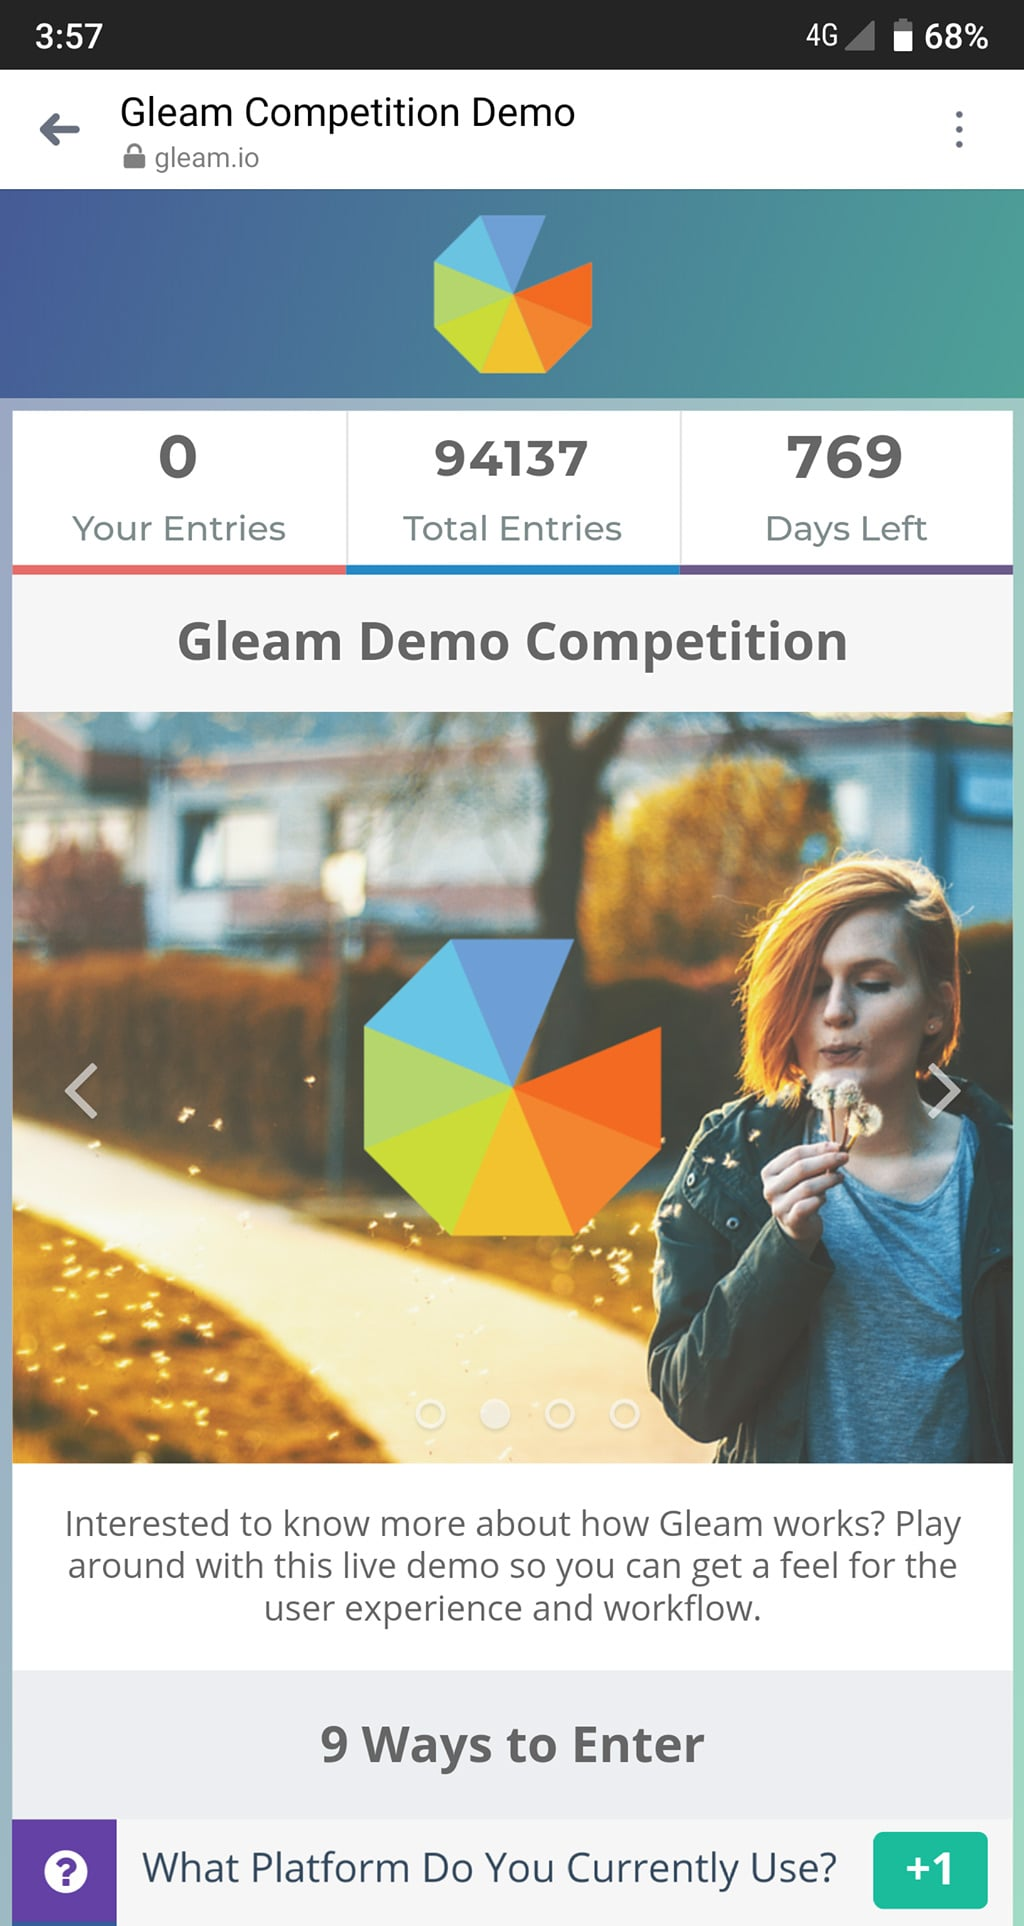 Gleam Competitions are optimised for mobile devices